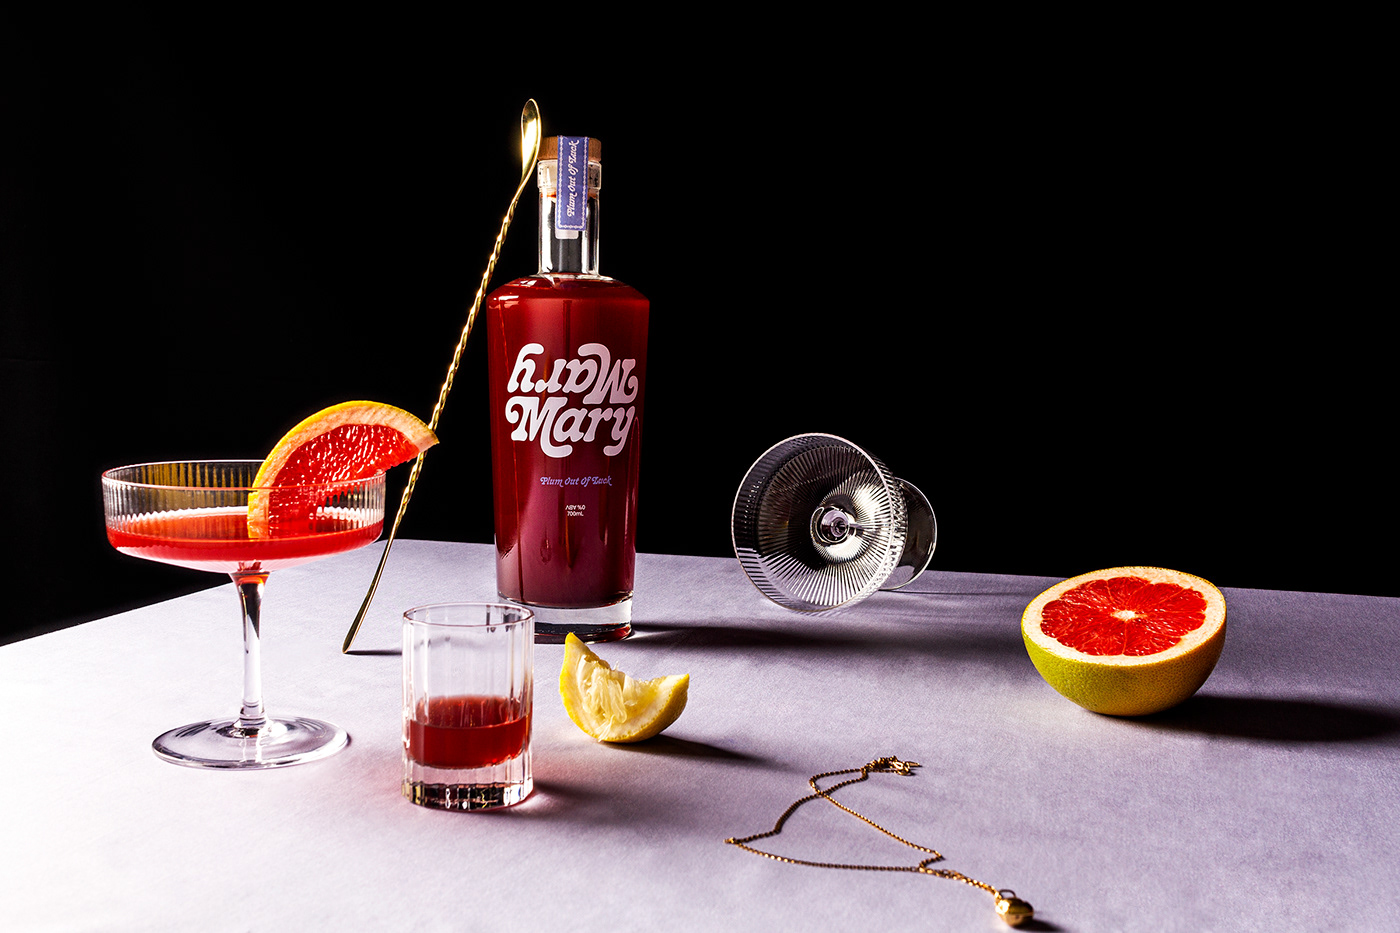 art direction  branding  Client Gift colour COVID-19 ILLUSTRATION  Non-Alcoholic Beverages Packaging Photography  Web Design